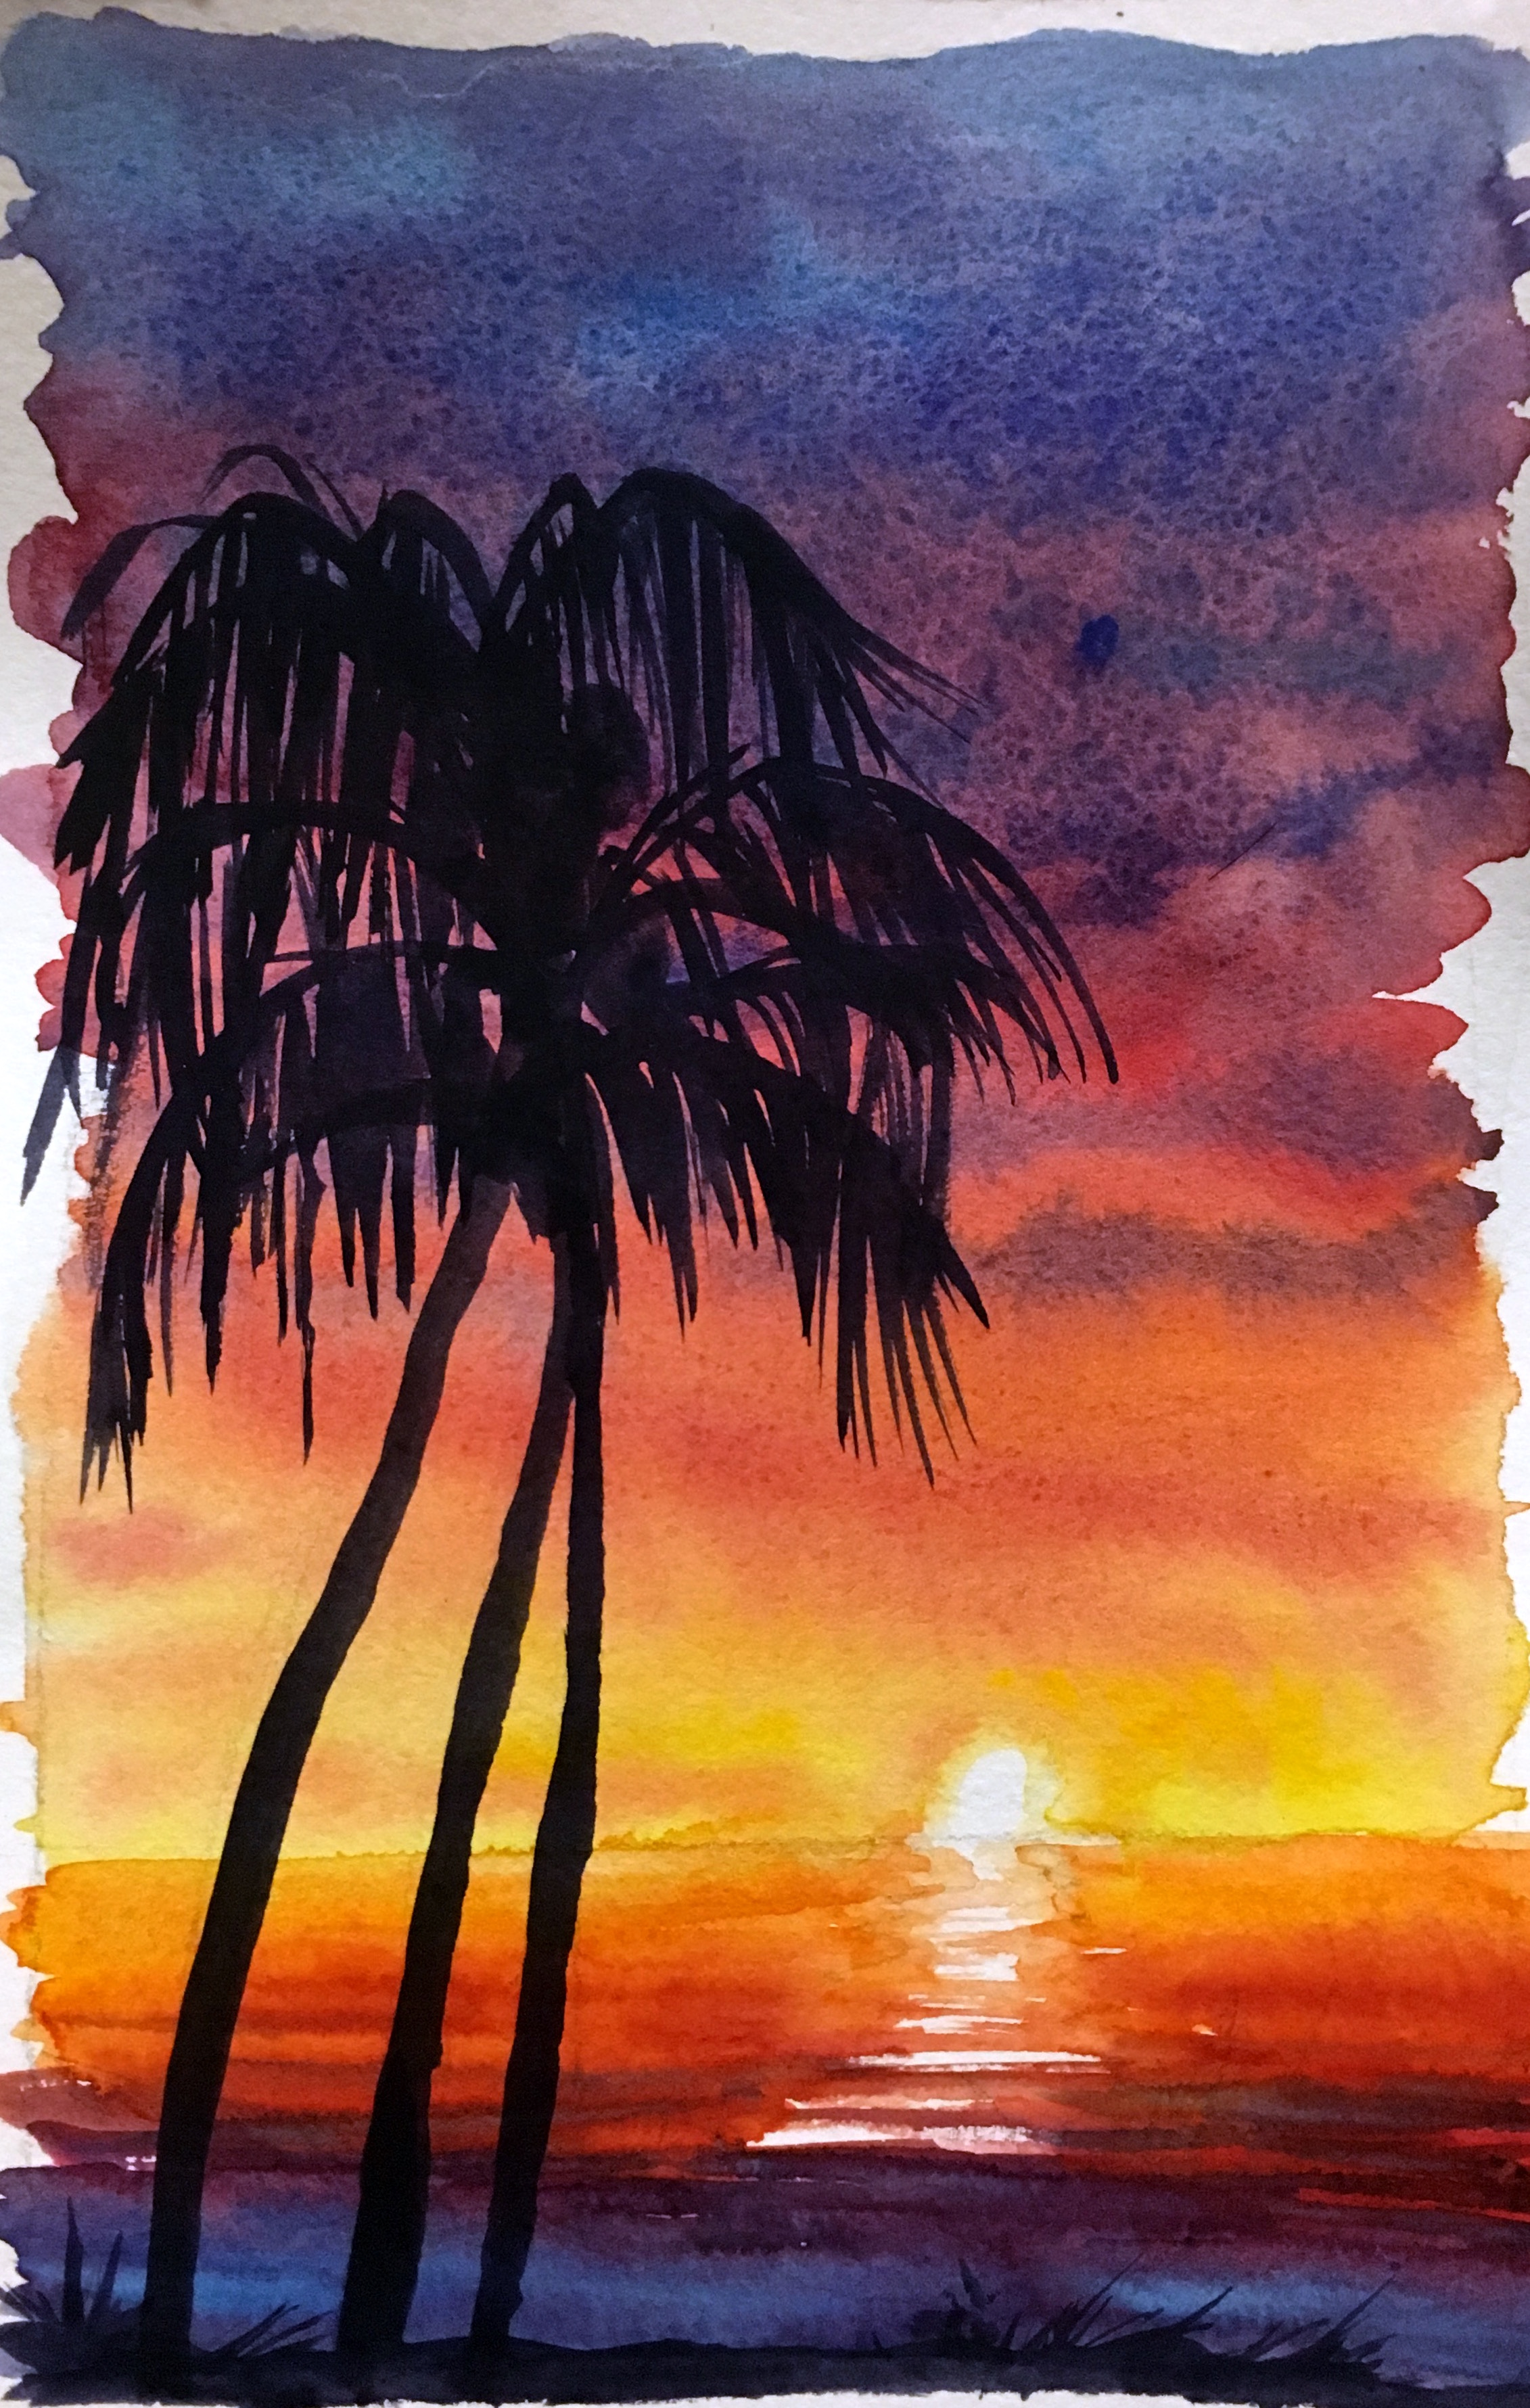 2262x3560 How To Watercolor Paint A Sunset Sky With Silhouettes